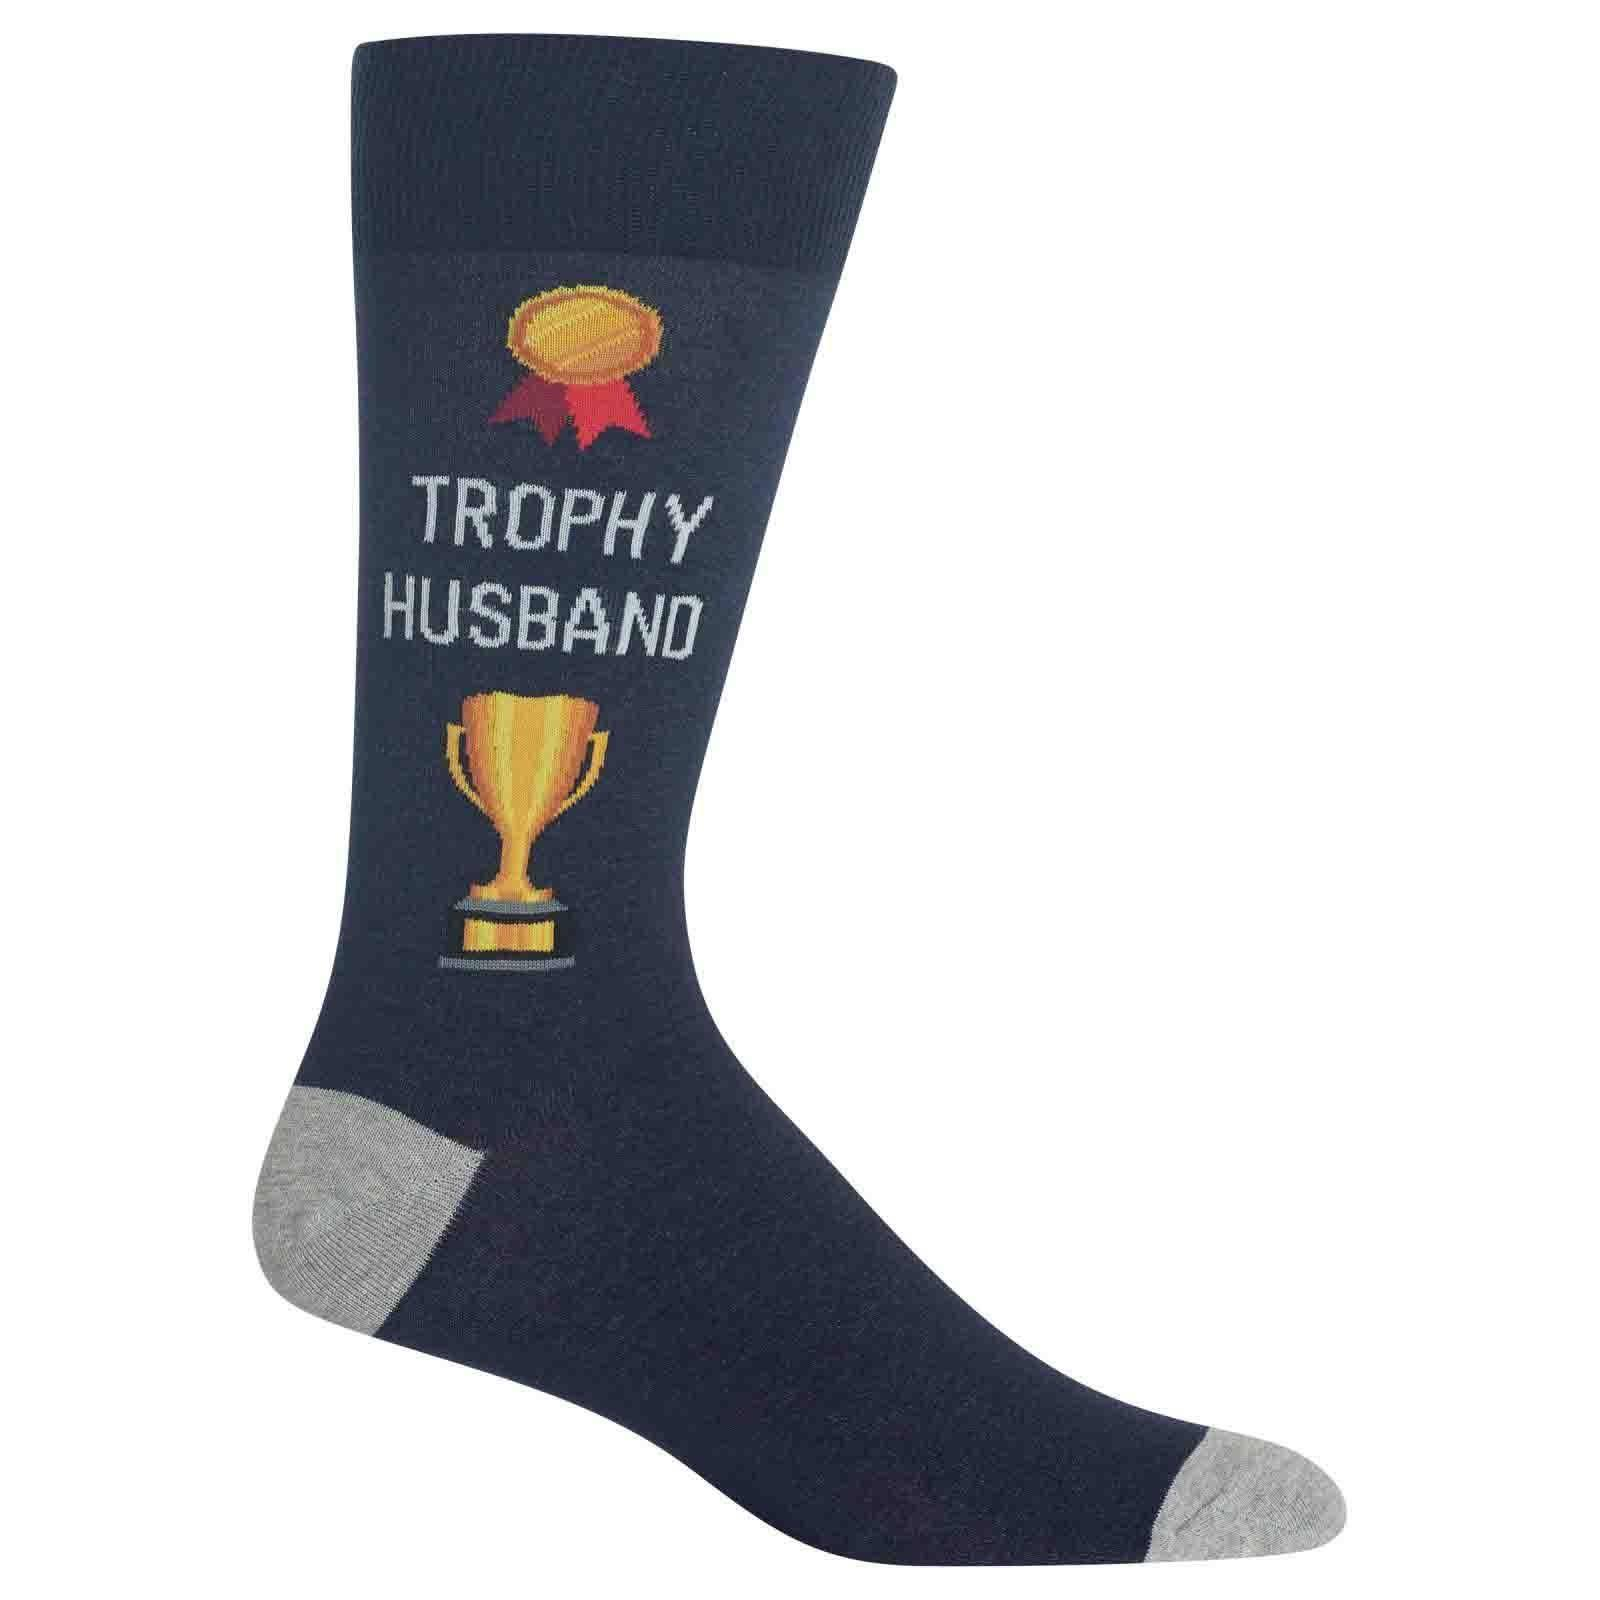 Hot Sox - Trophy Husband Crew Socks | Men's